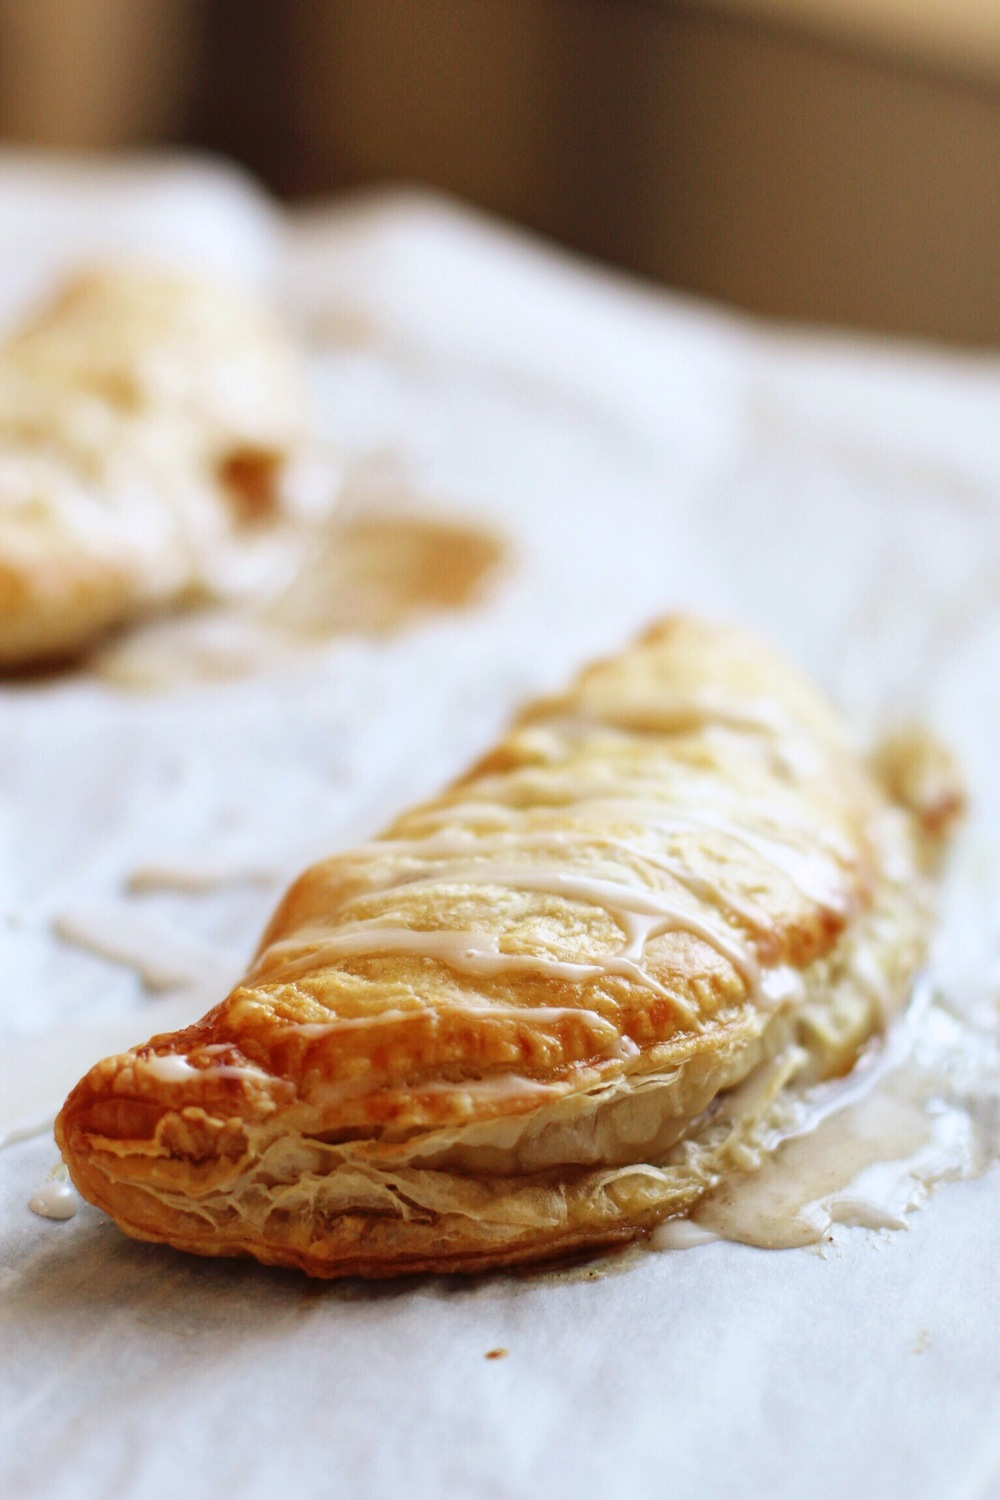 Peach turnovers - The Pastiche